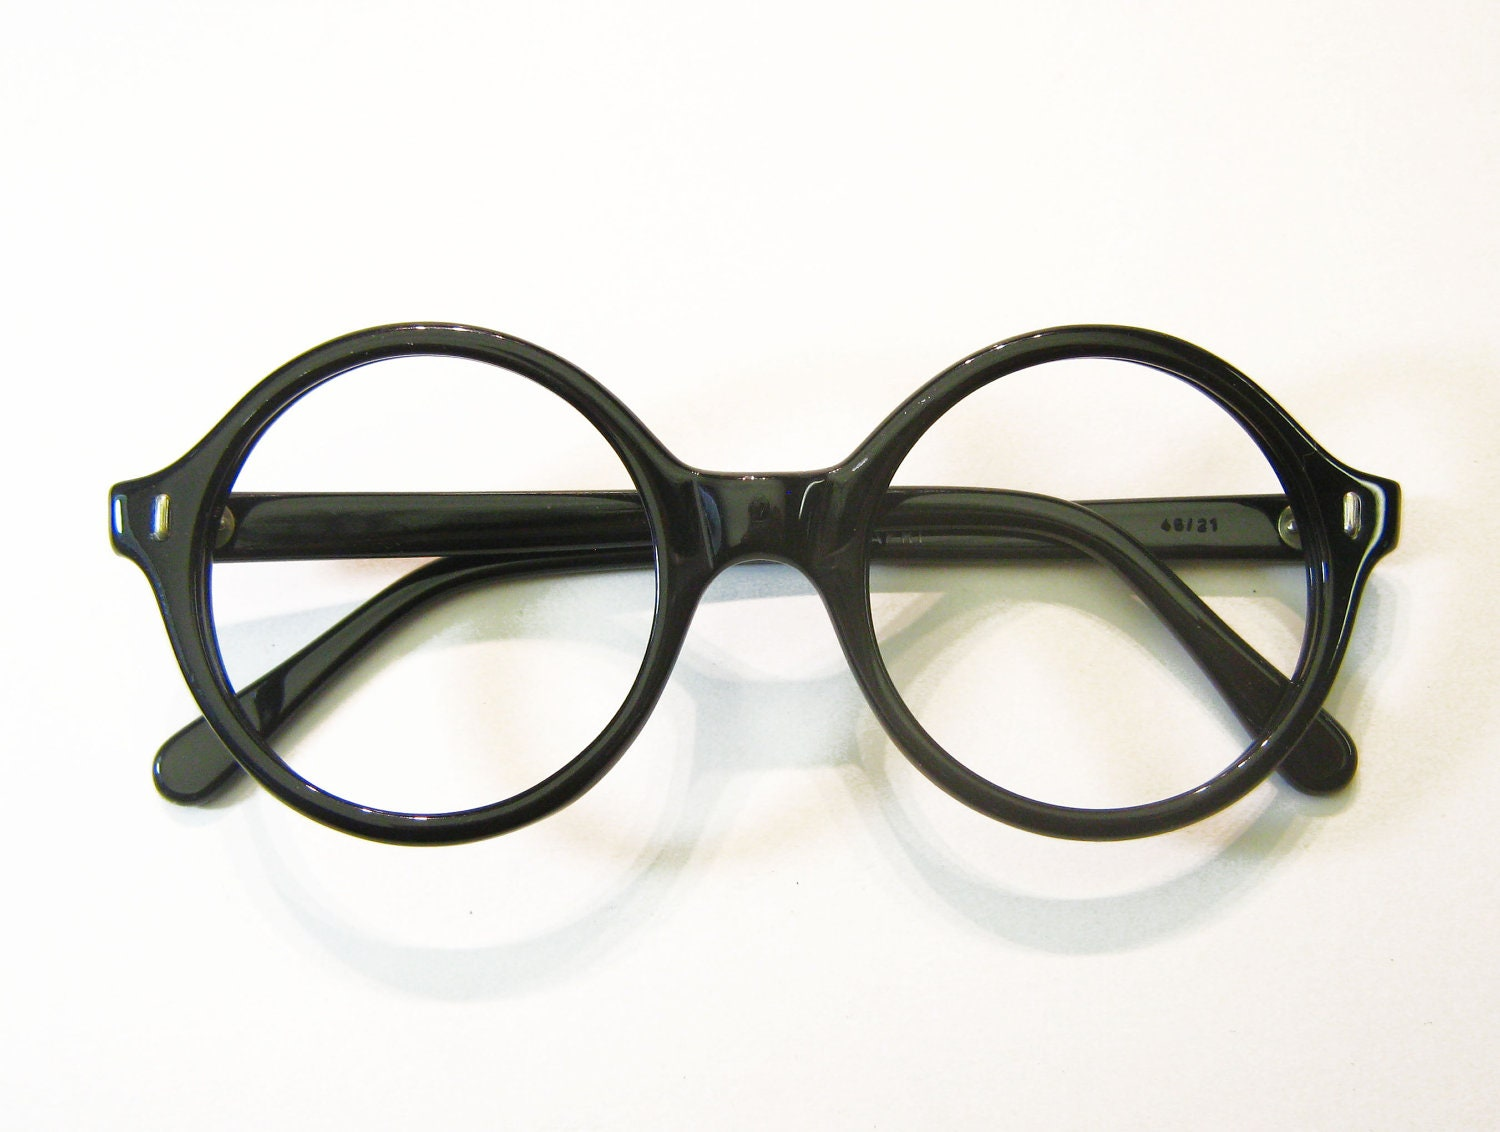 Eyeglass Frame Large : Large French 360 Round Eyeglass Frames France Vintage 60s